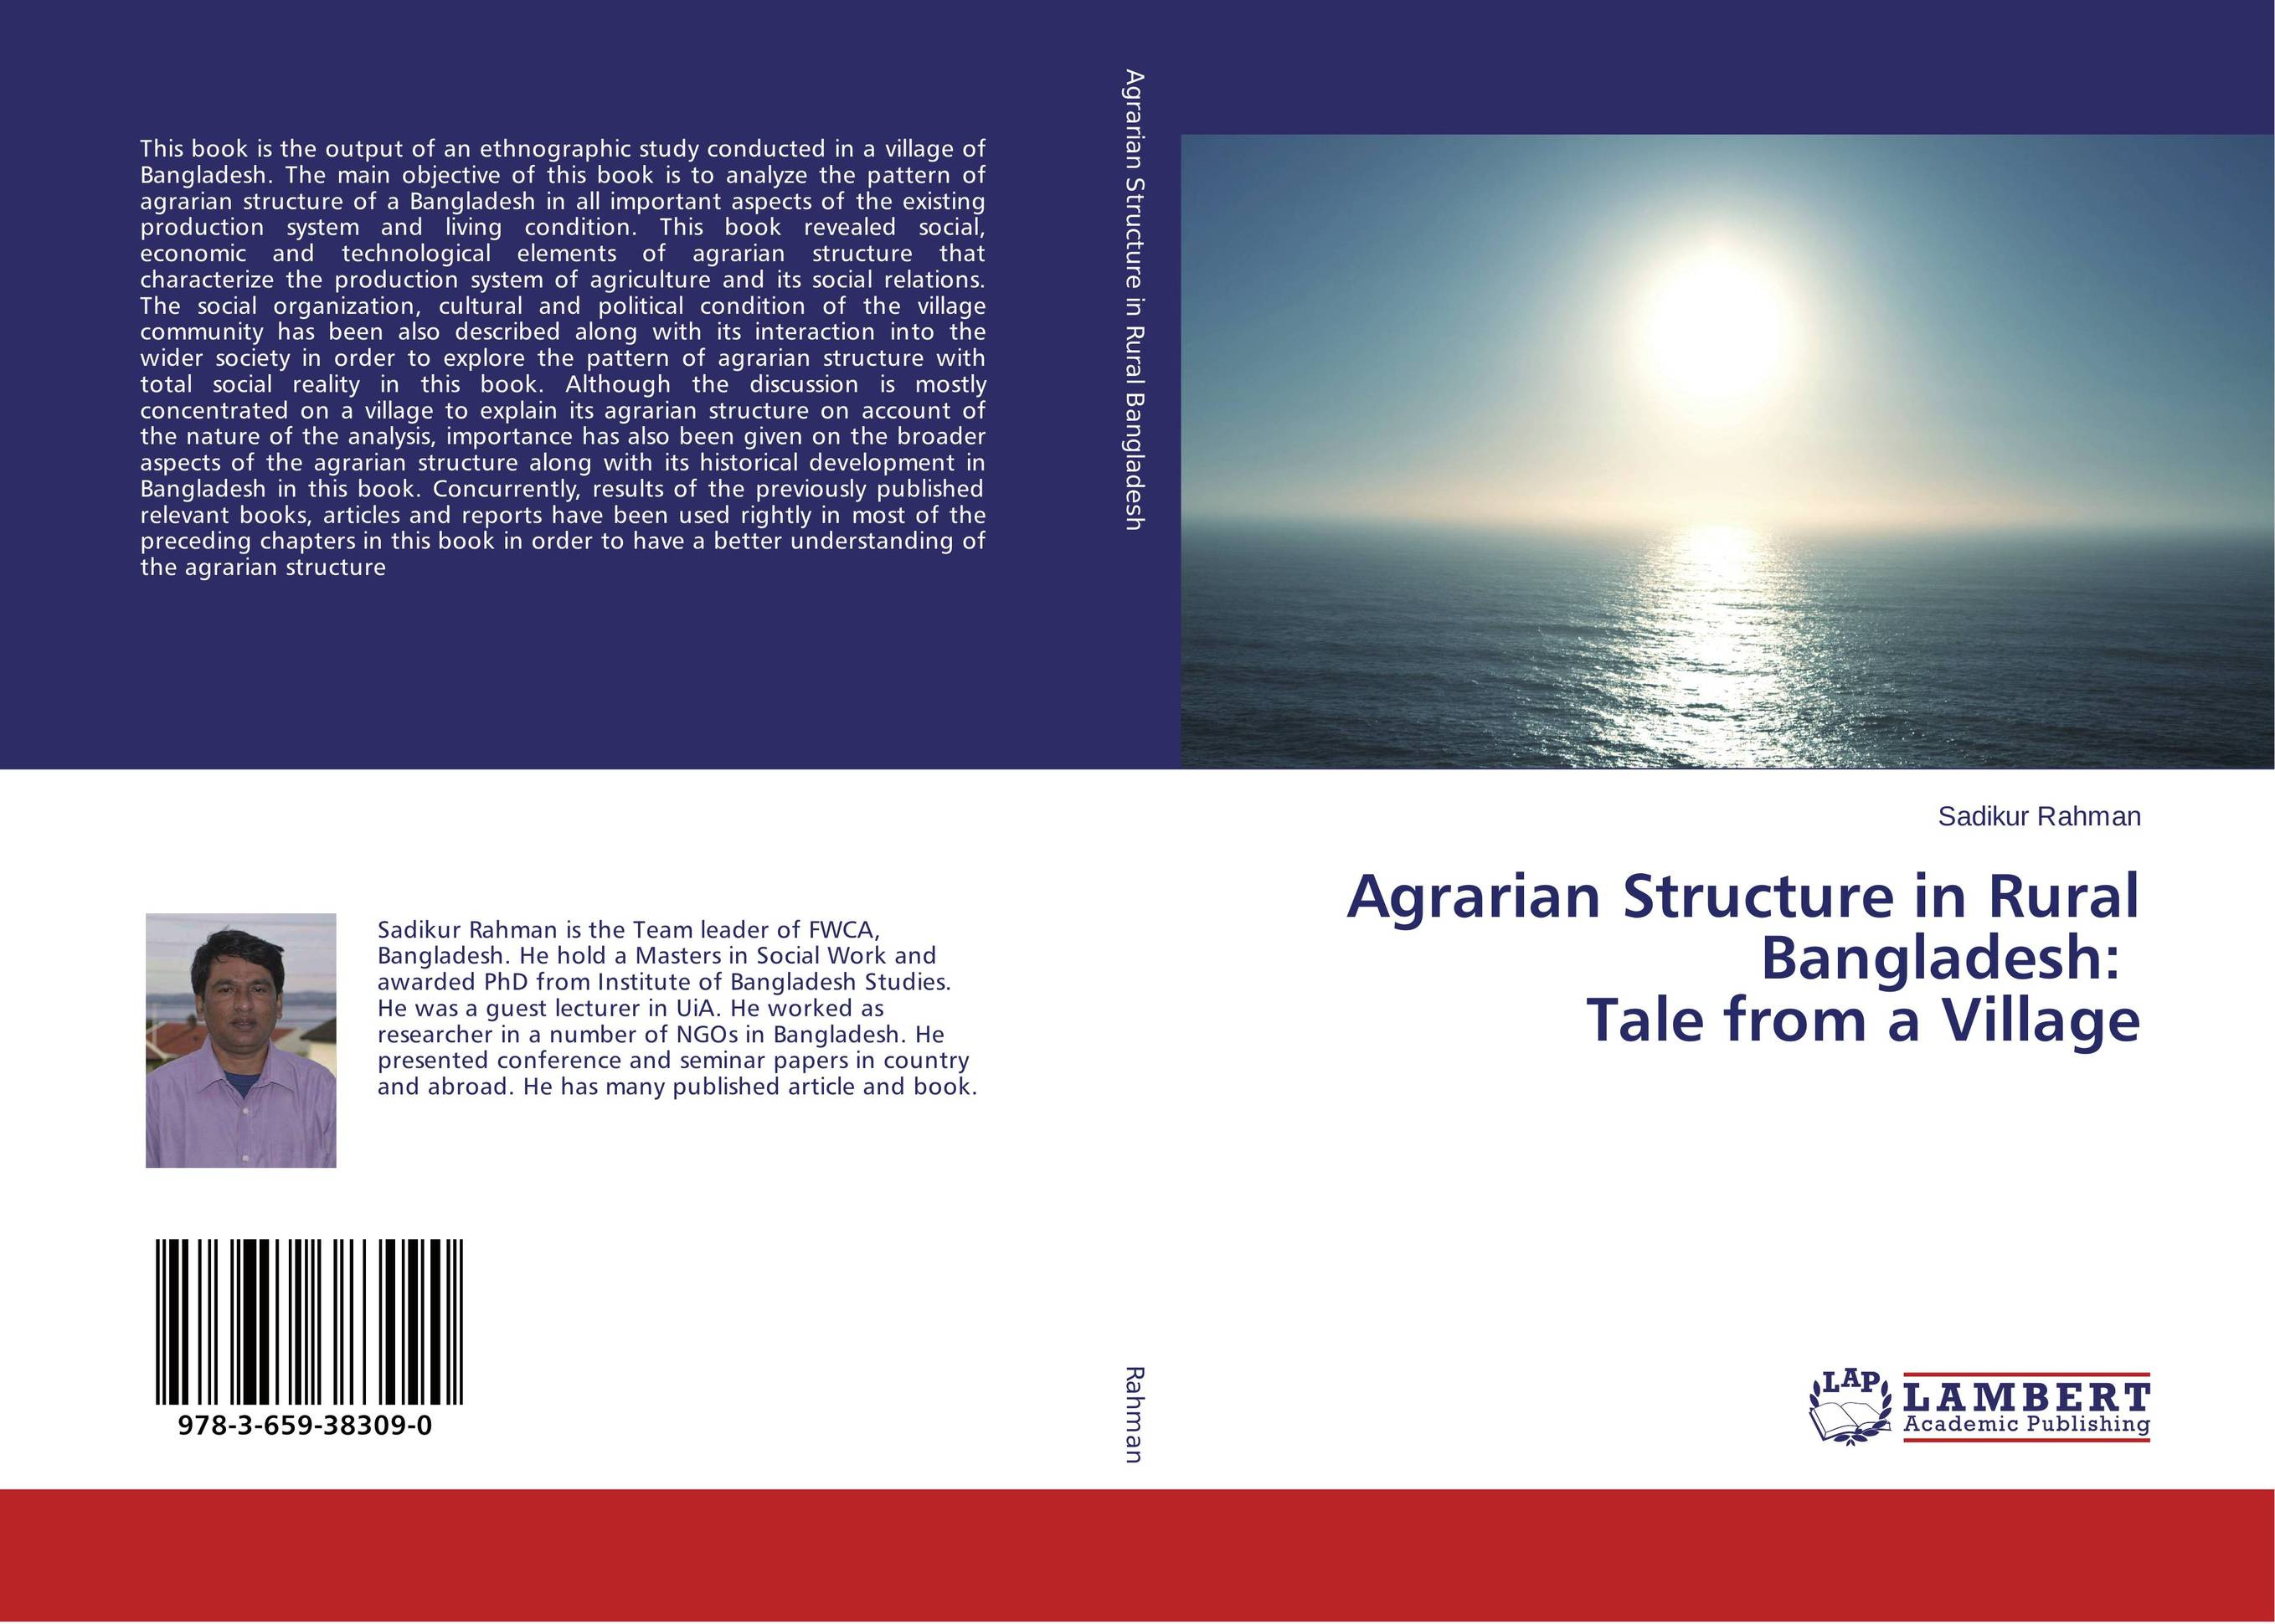 Agrarian Structure in Rural Bangladesh: Tale from a Village